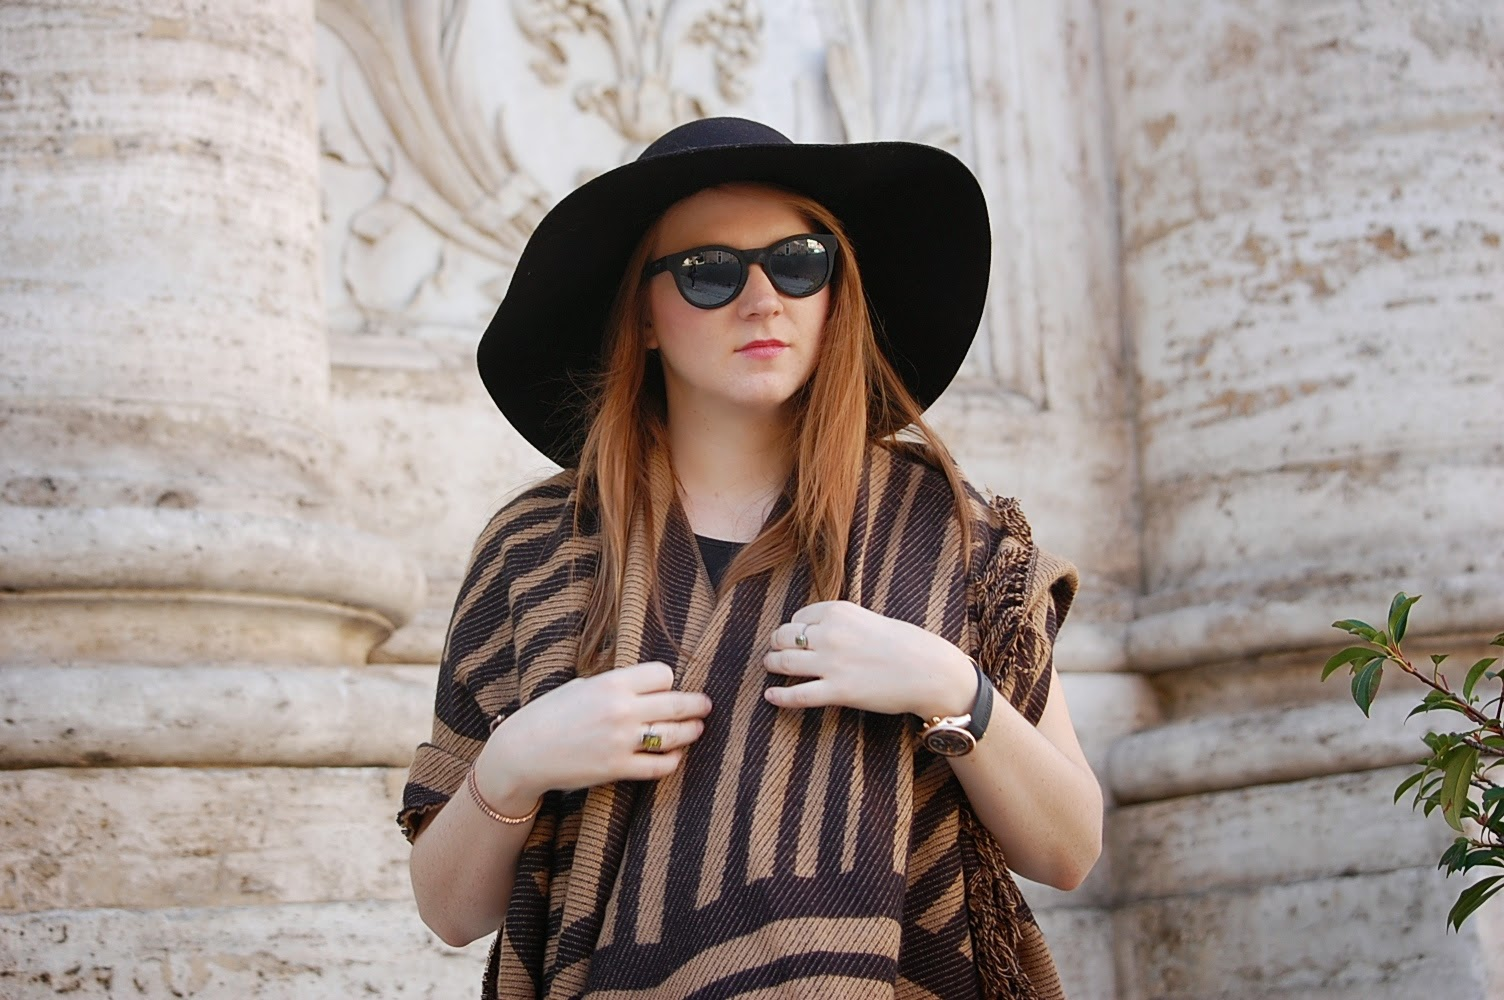 stradivarius poncho hat fashion blogger outfit style maui jim